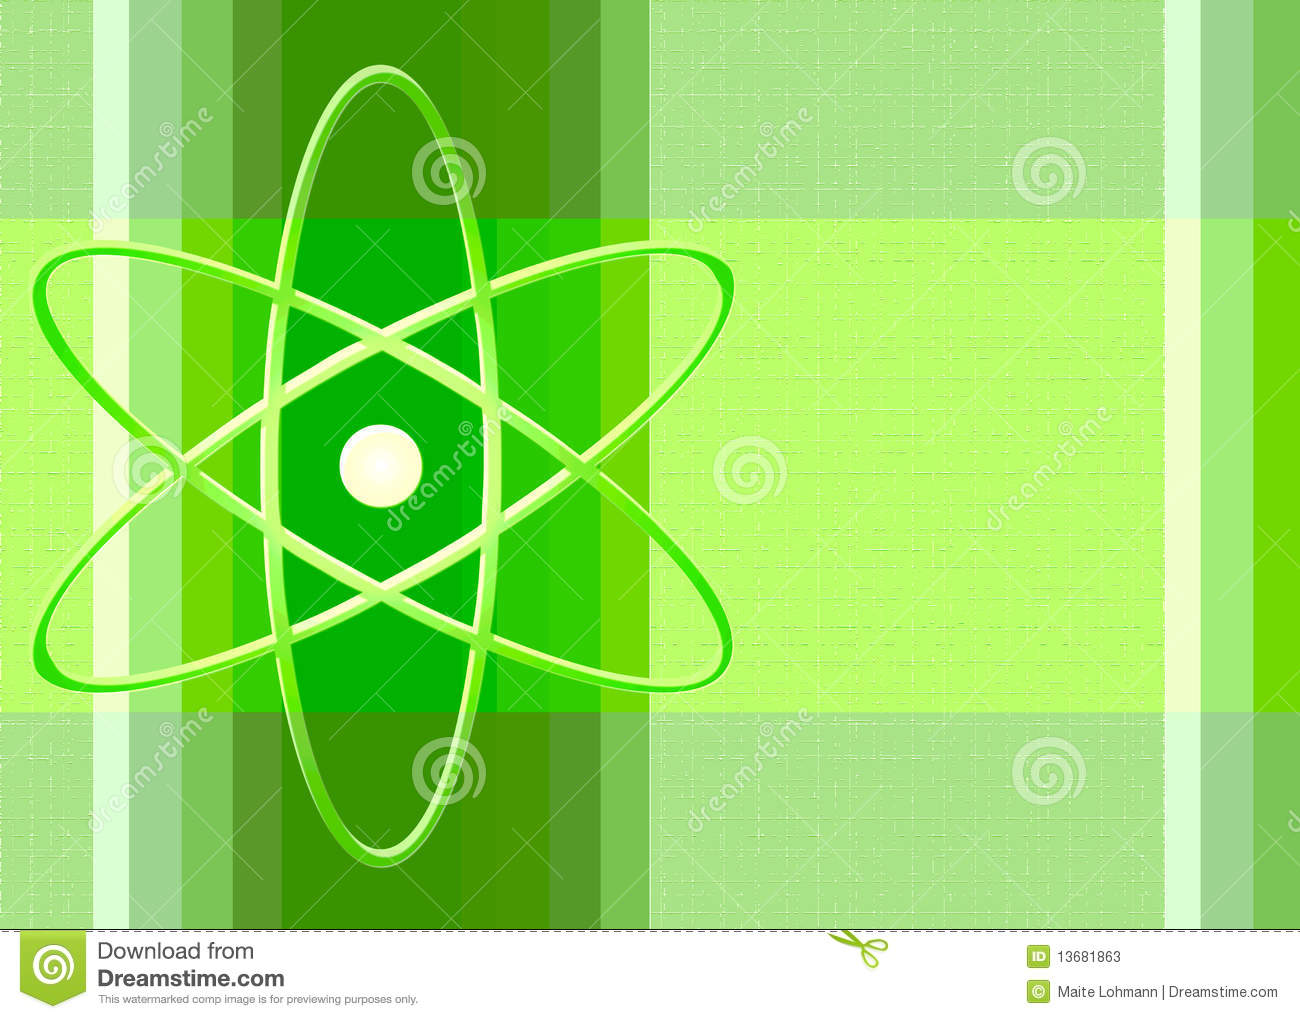 Nuclear Symbol In Green Stock Photos - Image: 13681863